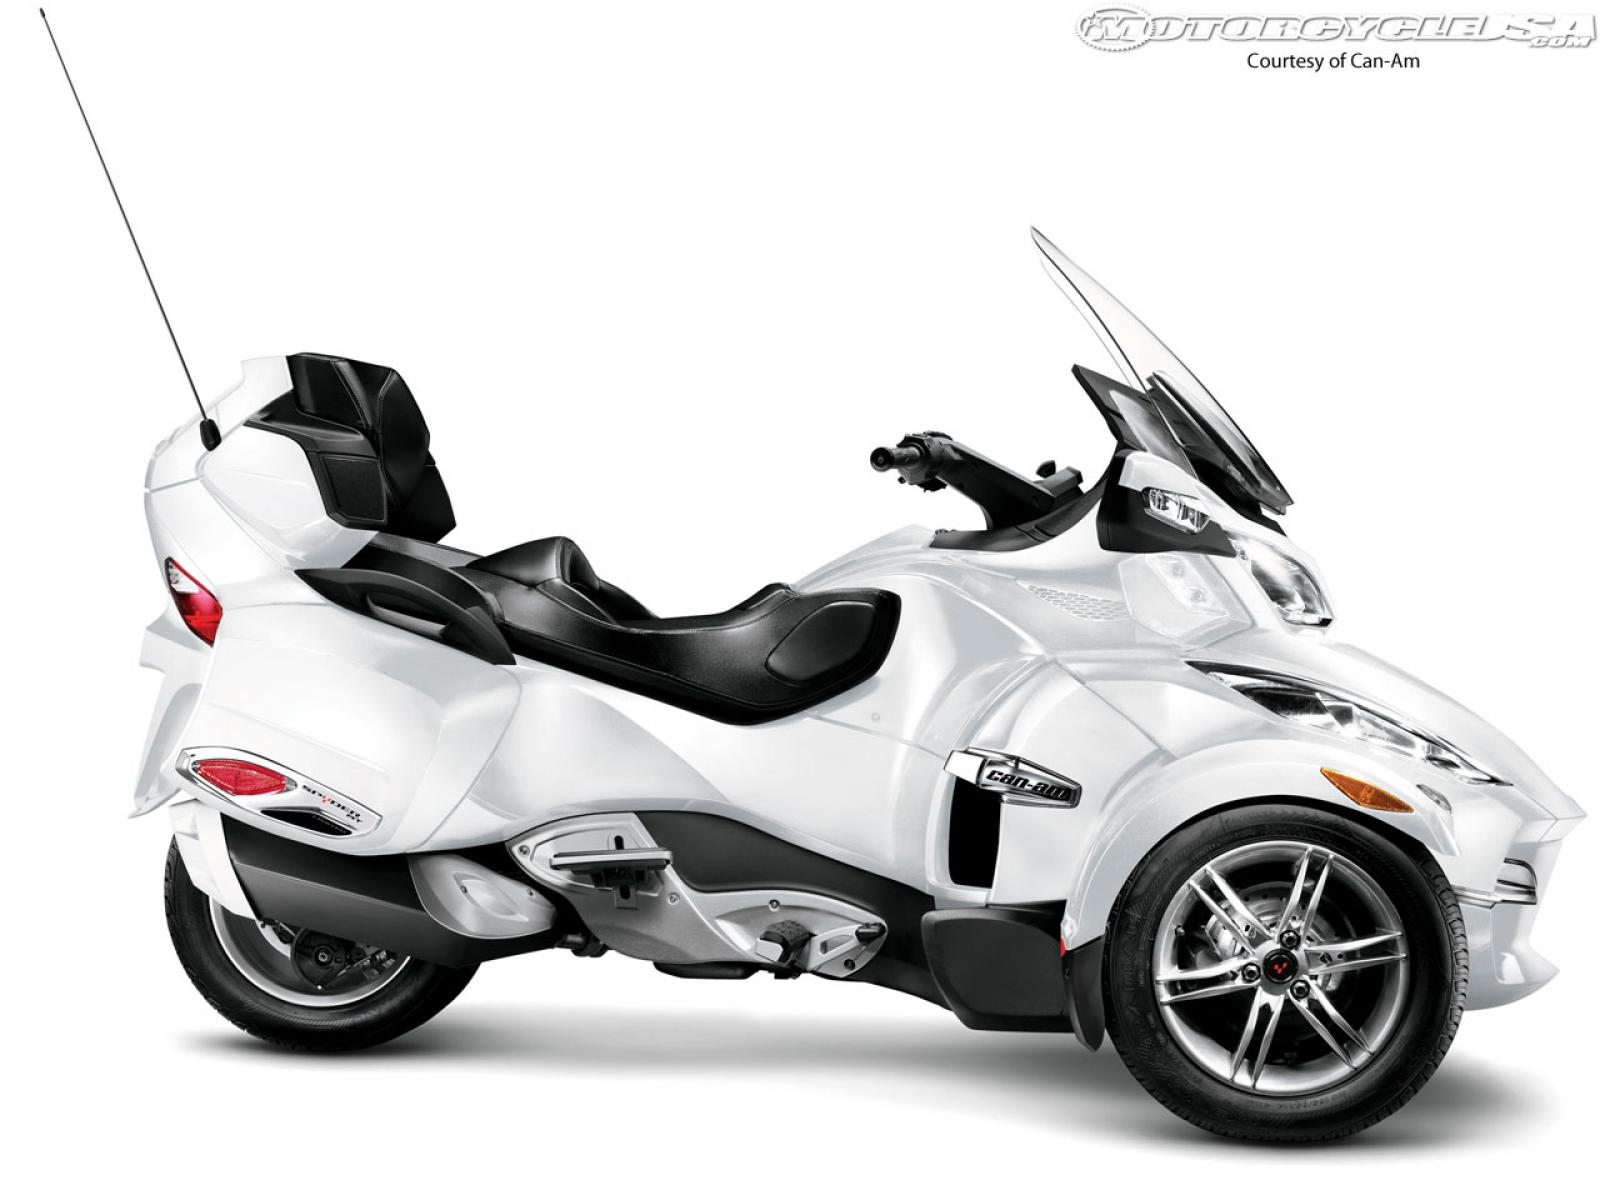 2011 can am spyder roadster rt limited moto zombdrive com. Black Bedroom Furniture Sets. Home Design Ideas